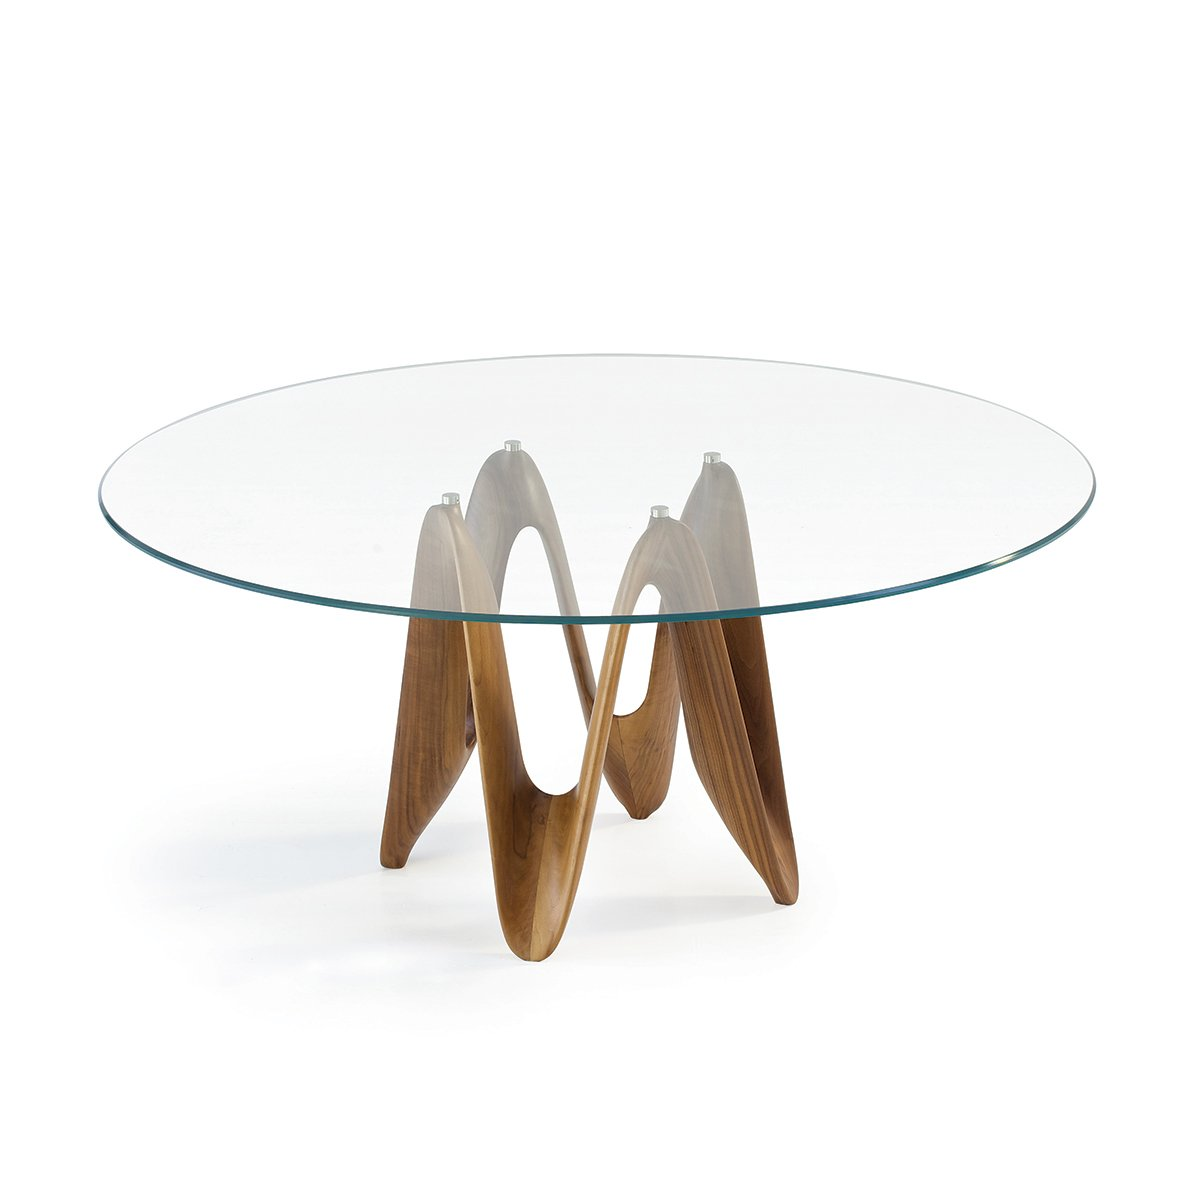 Table de repas ronde voltige meubles et atmosph re for Table de repas ronde